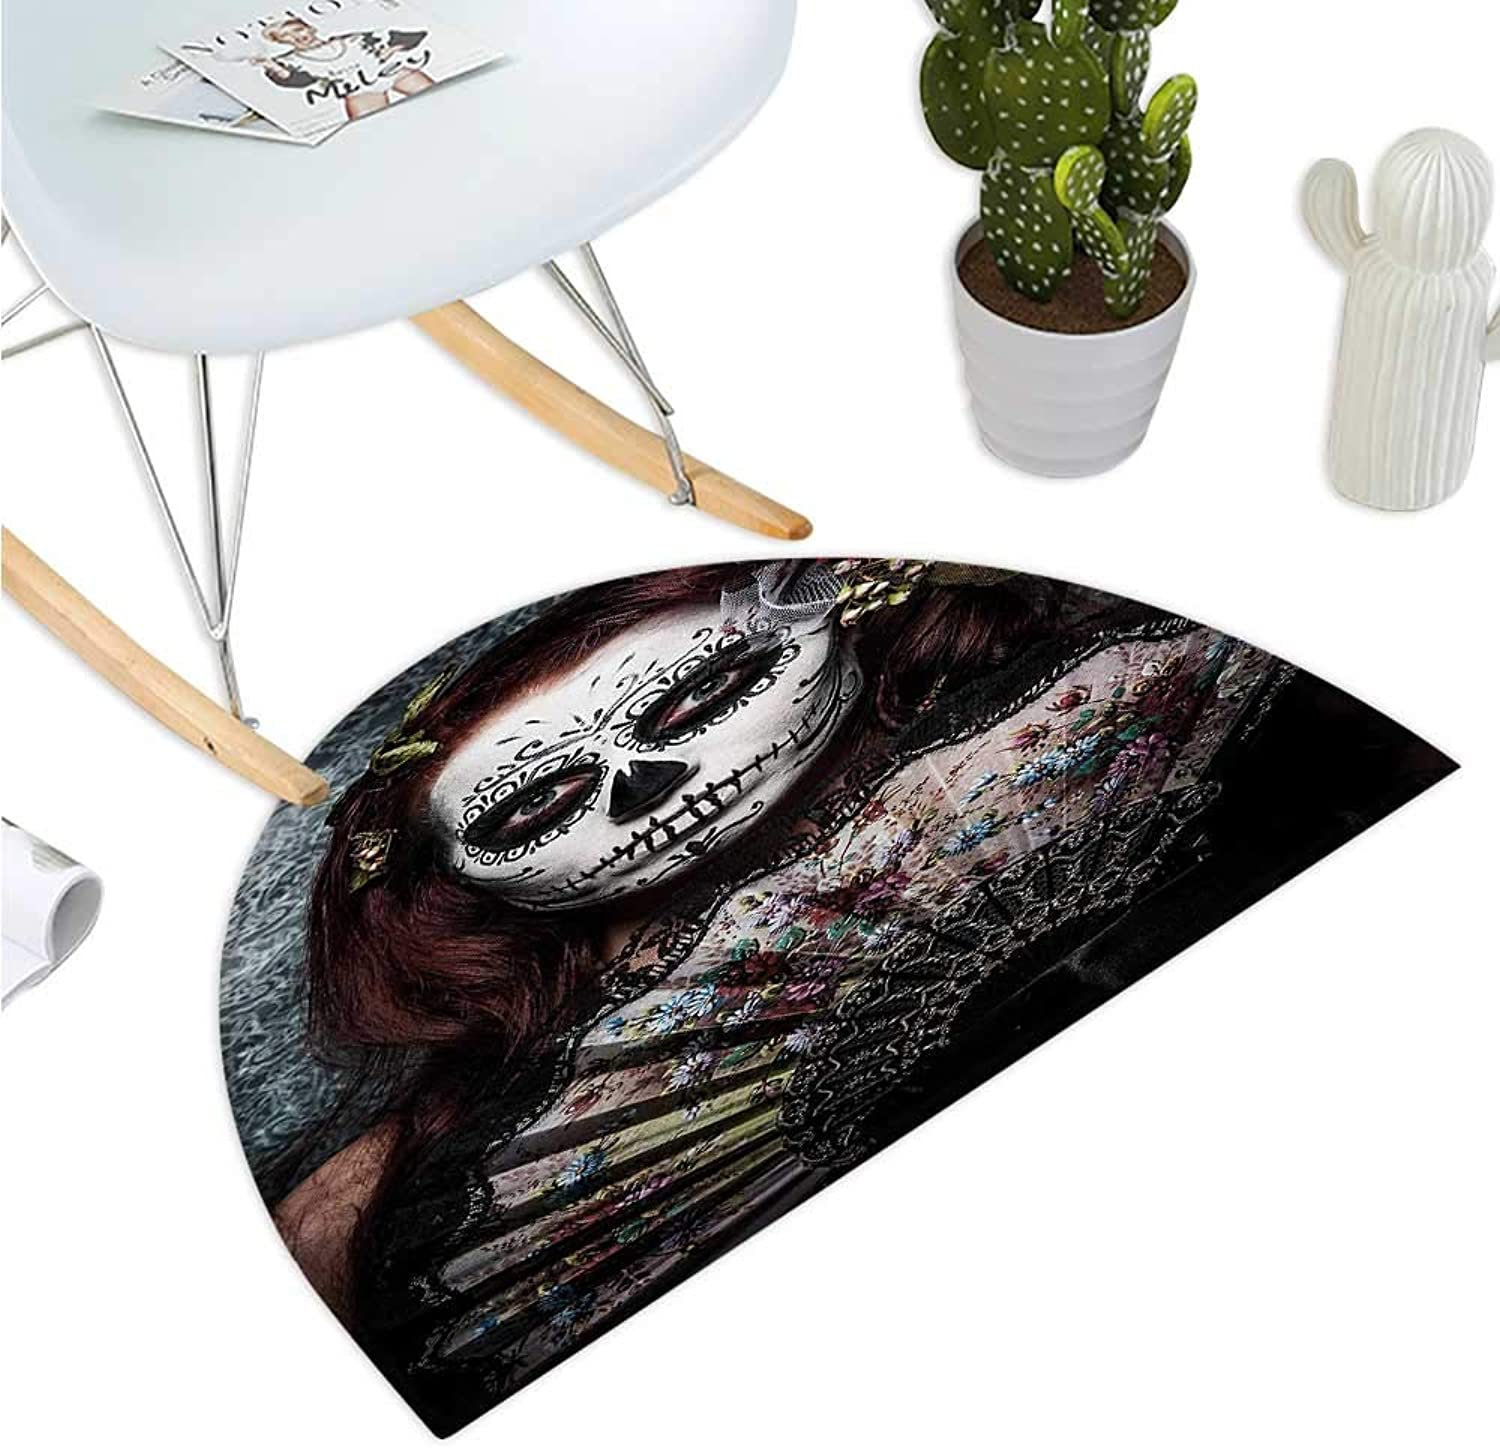 Day of The Dead Semicircular Cushion Make up Artist Girl with Dead Skull Scary Mask pinks Artwork Print Bathroom Mat H 51.1  xD 76.7  Cadet bluee Maroon